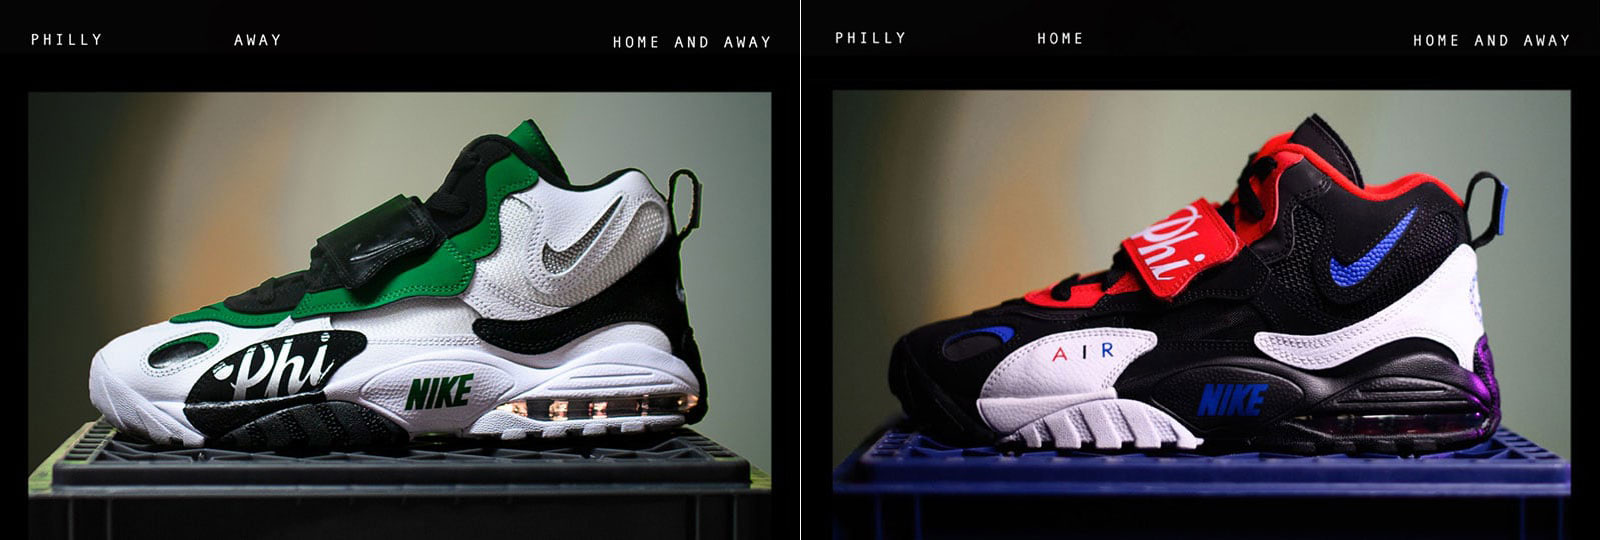 nike-philadelphia-philly-home-and-away-shoes